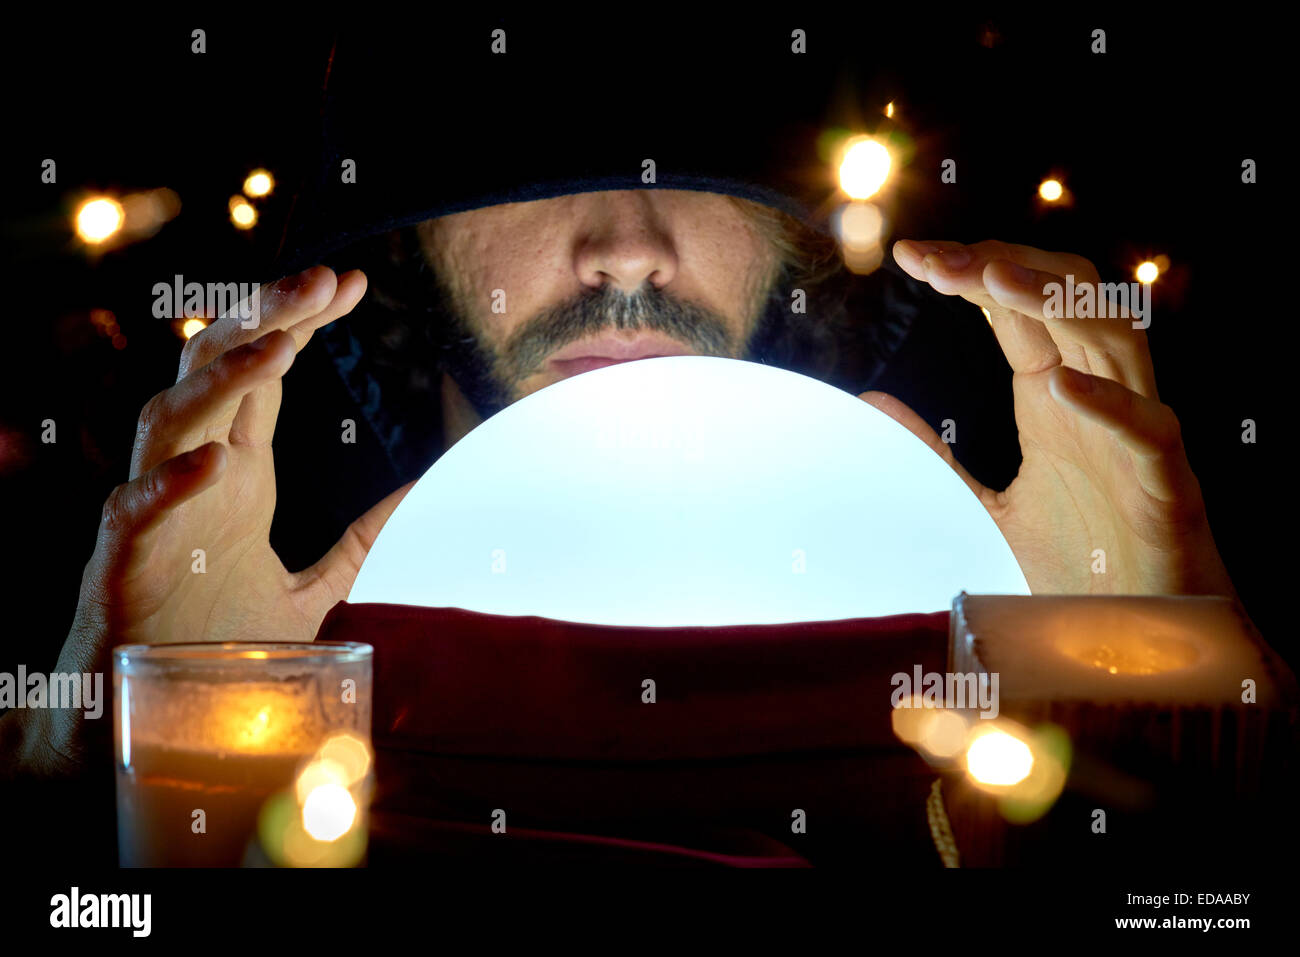 Very low key portrait of hooded man with eyes covered reading fortune on bright crystal ball, surrounded by candle - Stock Image